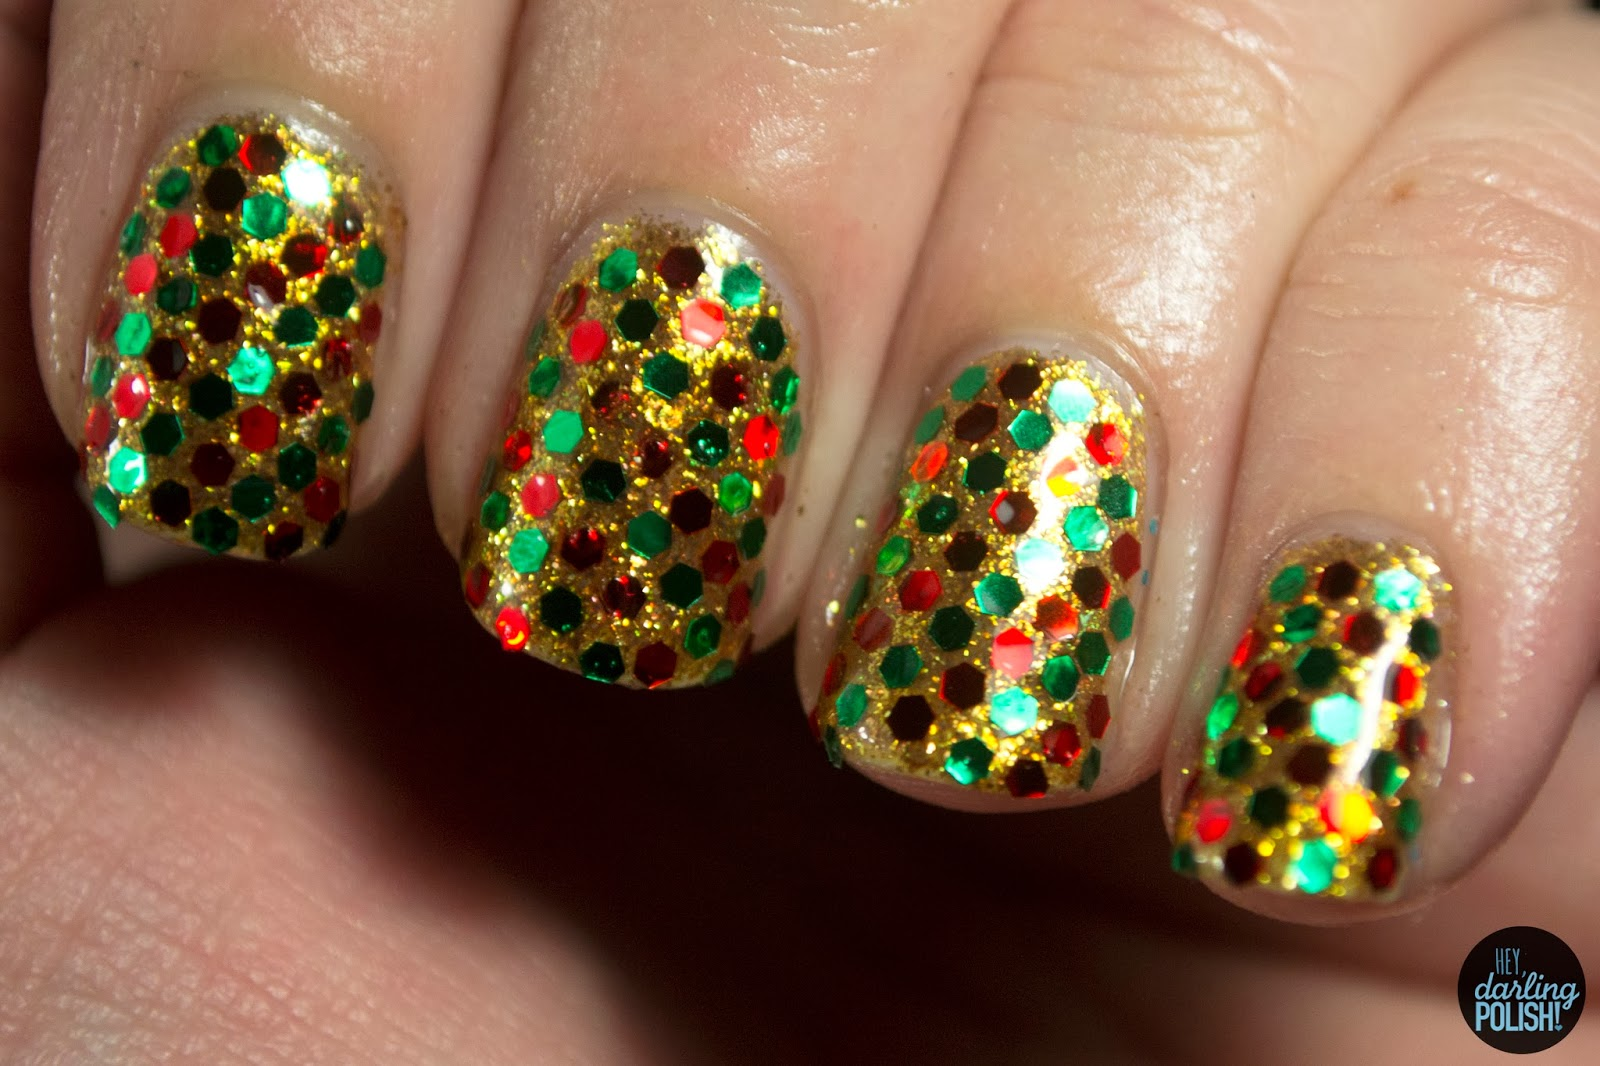 nails nail art nail polish glequins red green gold